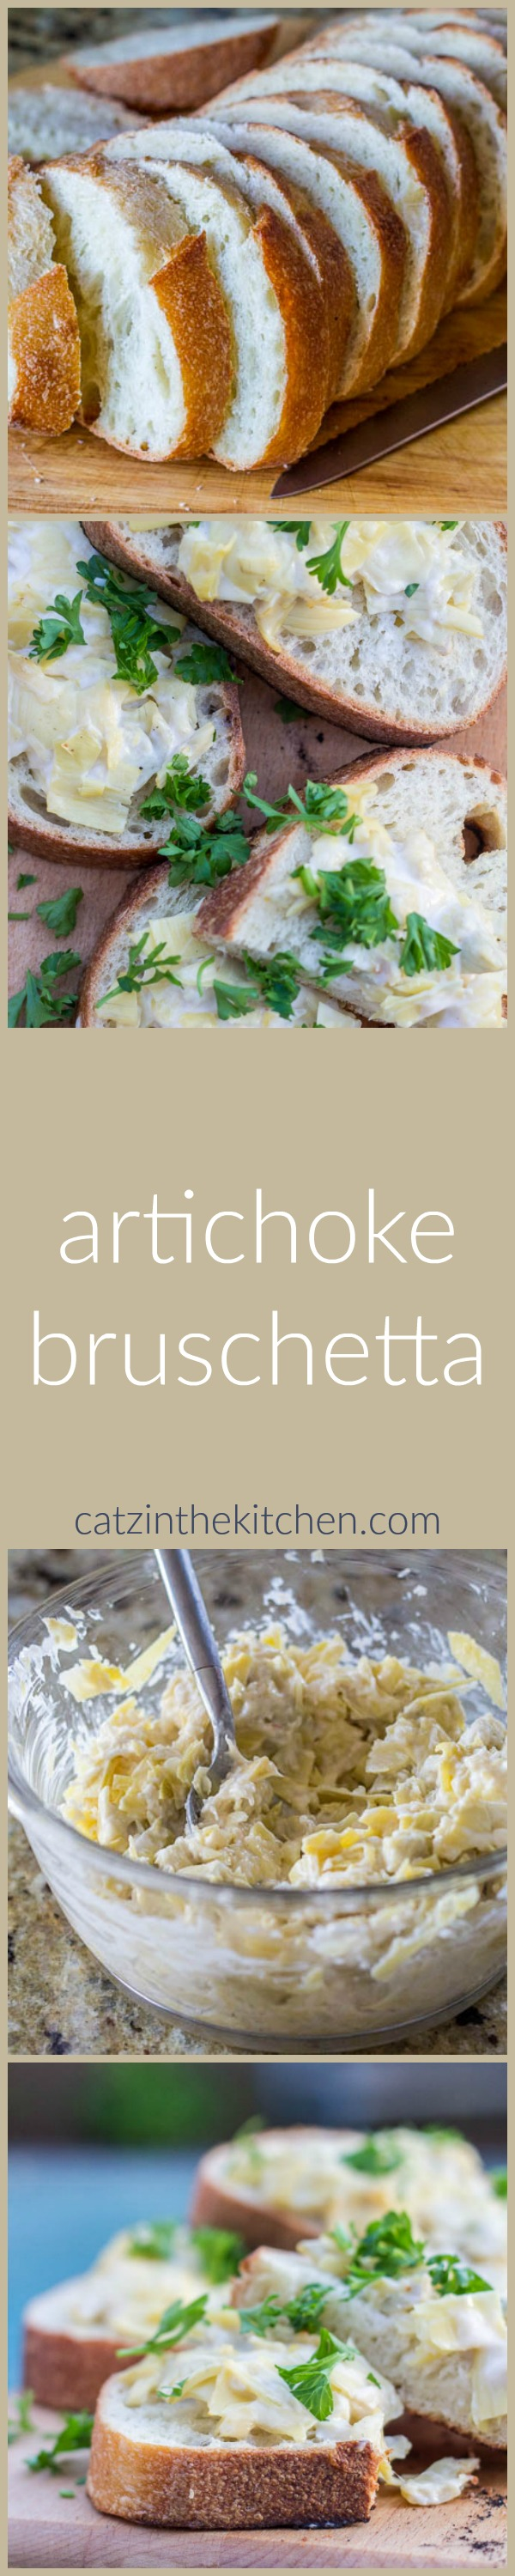 This recipe for artichoke bruschetta is probably our simplest, favorite appetizer! It goes well with pasta dishes and outdoor meals, and is ready in 15 min!